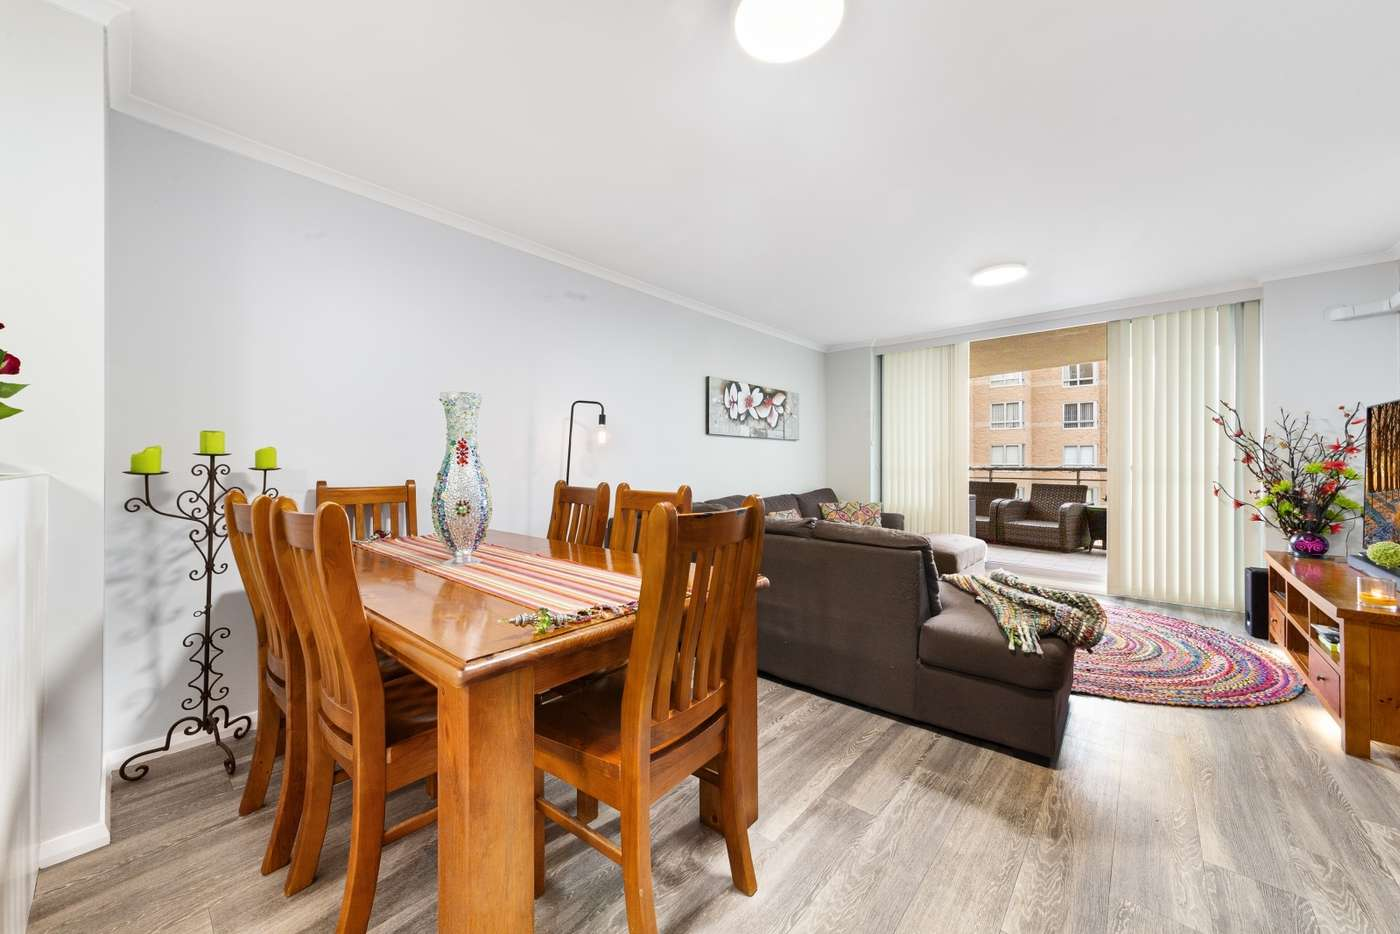 Sixth view of Homely unit listing, 352/80 John Whiteway Drive, Gosford NSW 2250